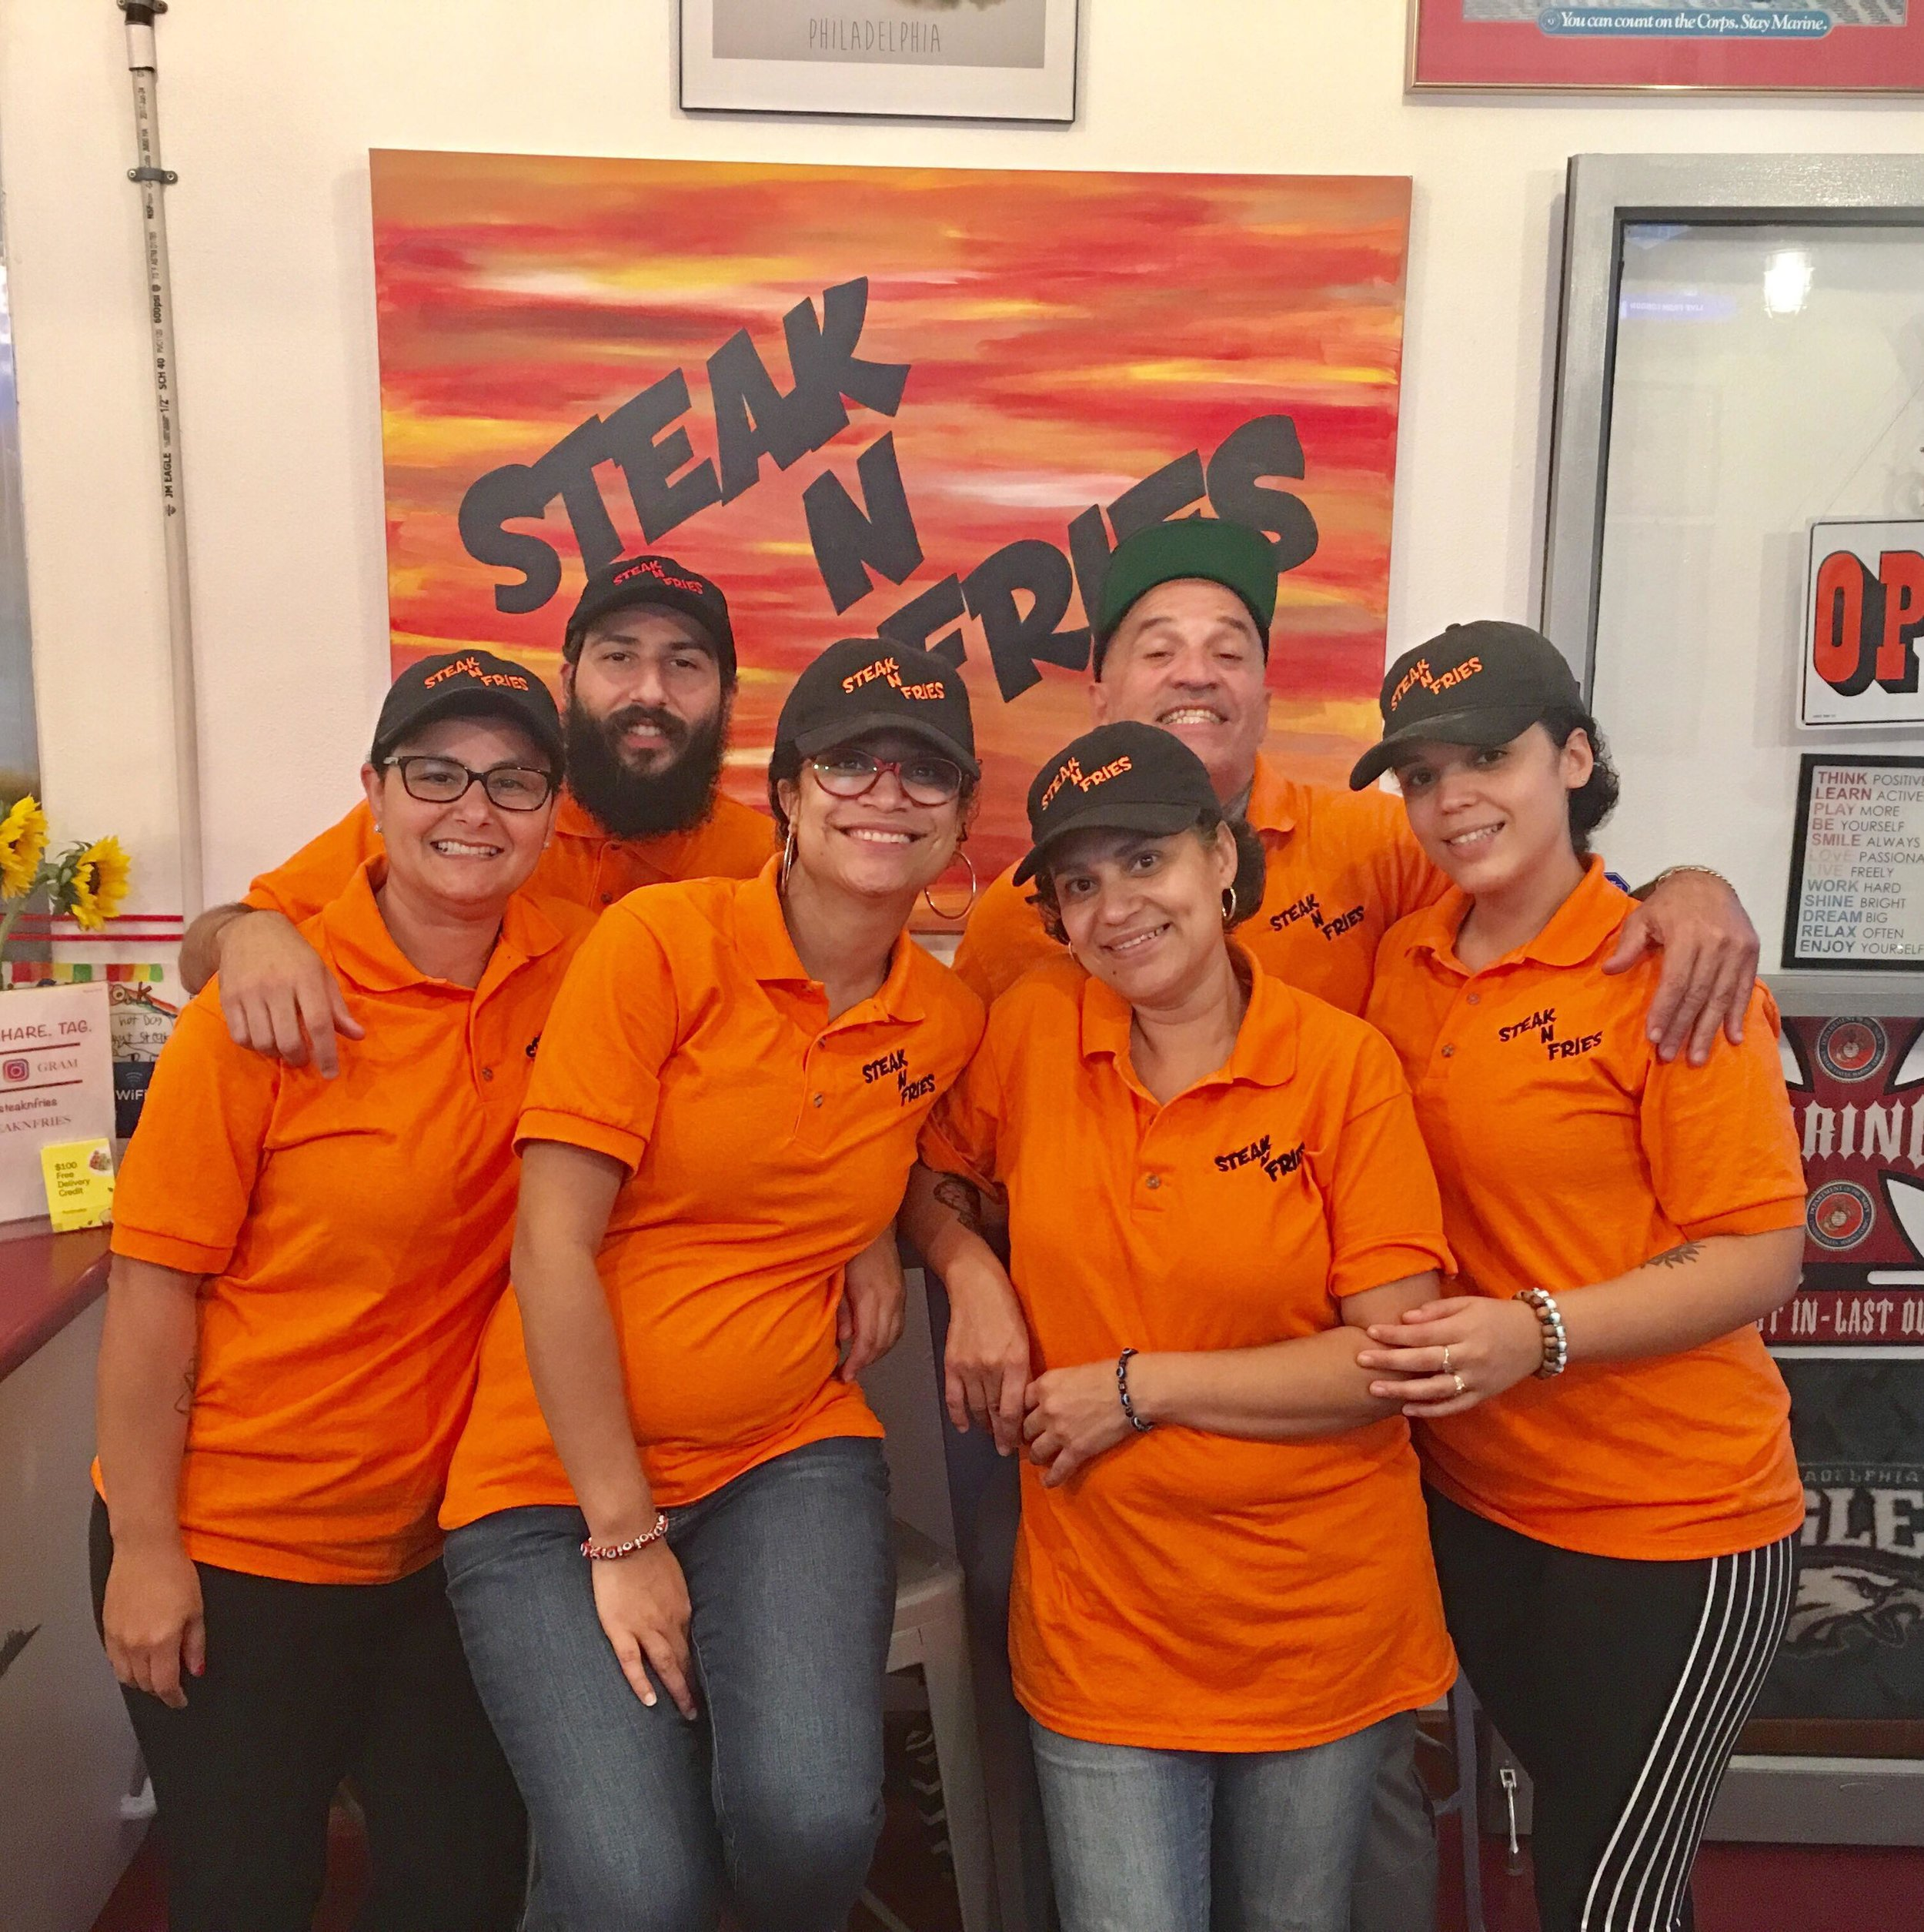 Meet the family behind Steak N Fries!